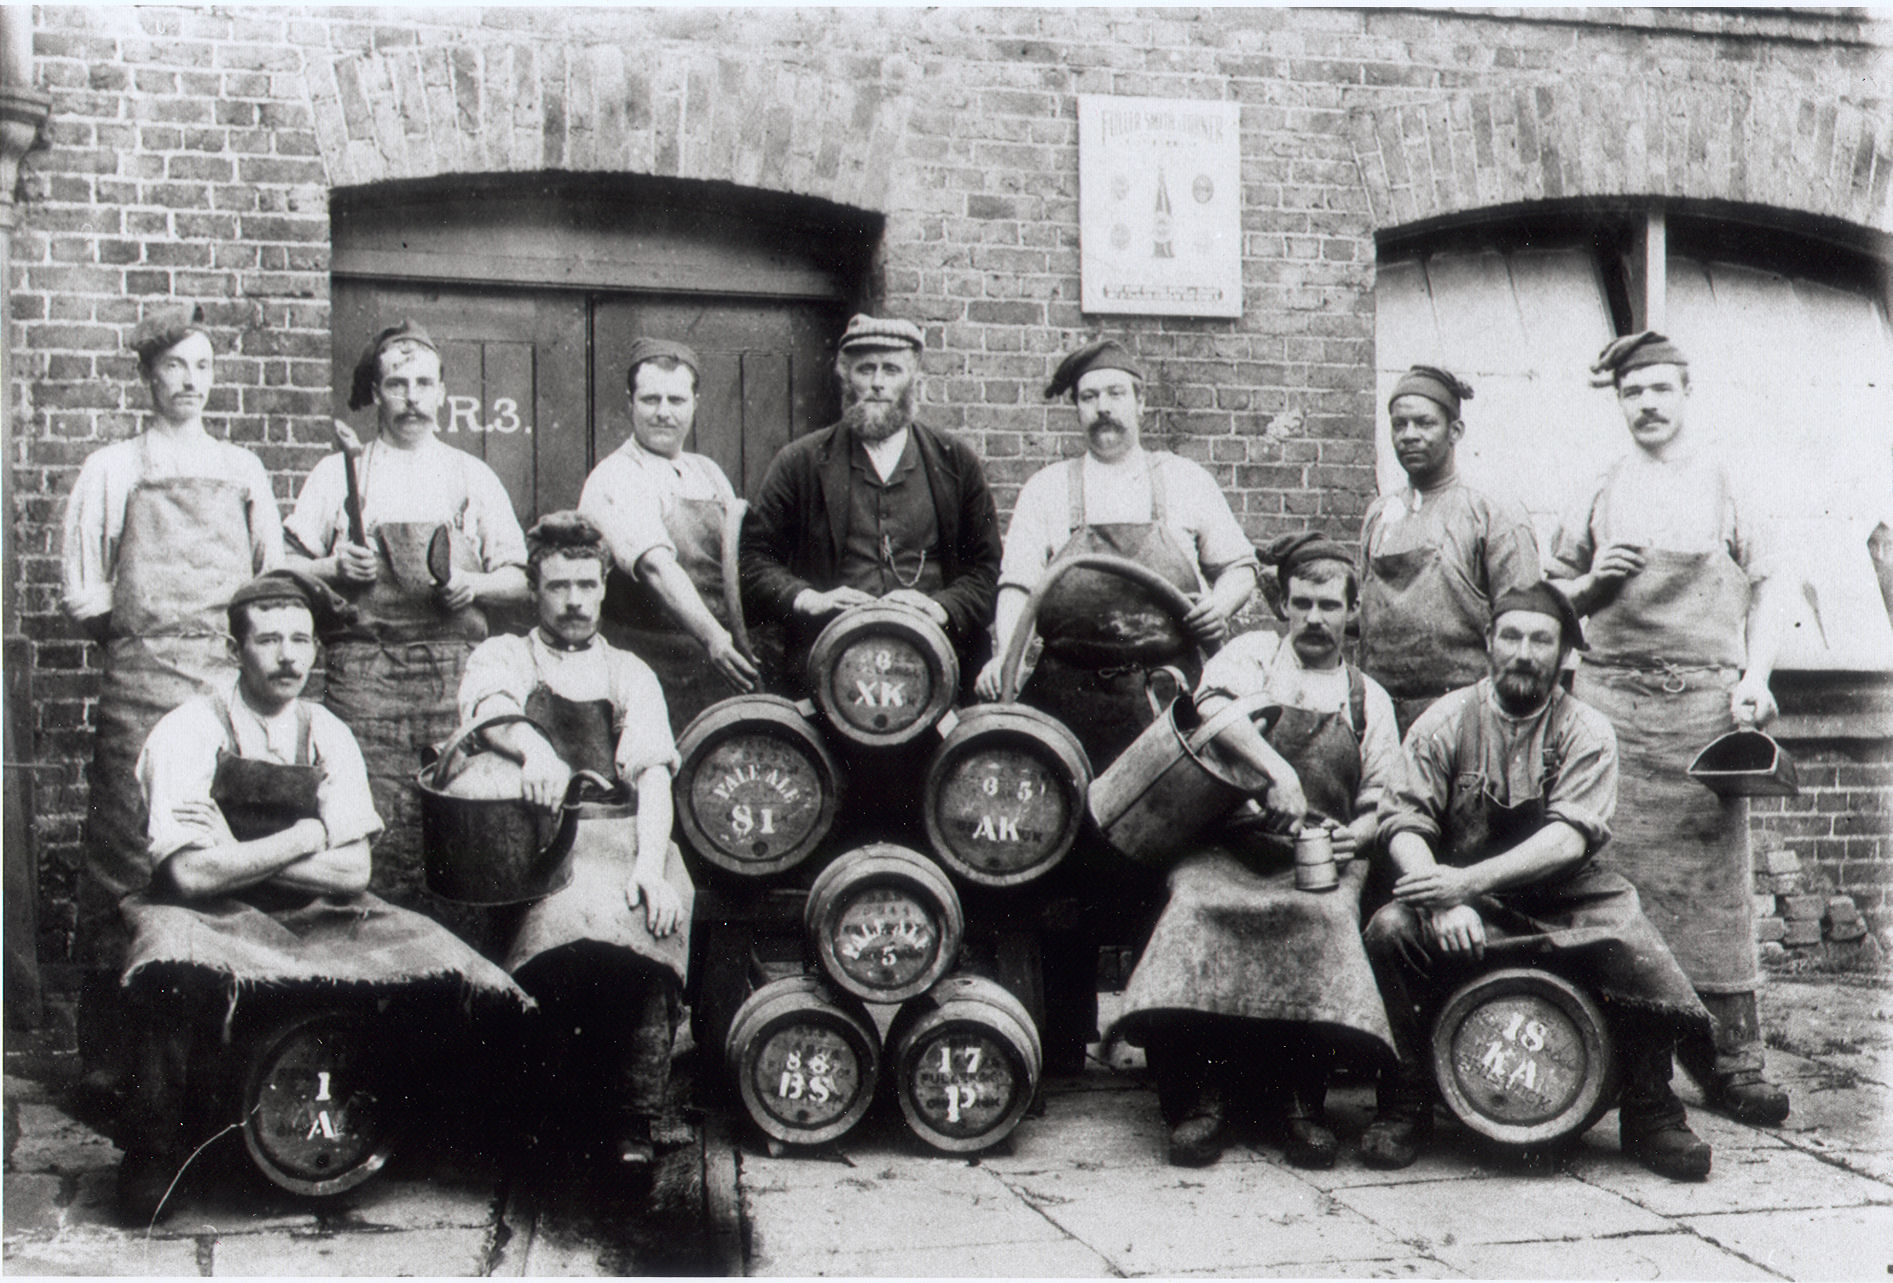 http://williamhogarthtrust.org.uk/wp-content/uploads/2012/07/90.62.5-Fullers-brewery-workers.jpg